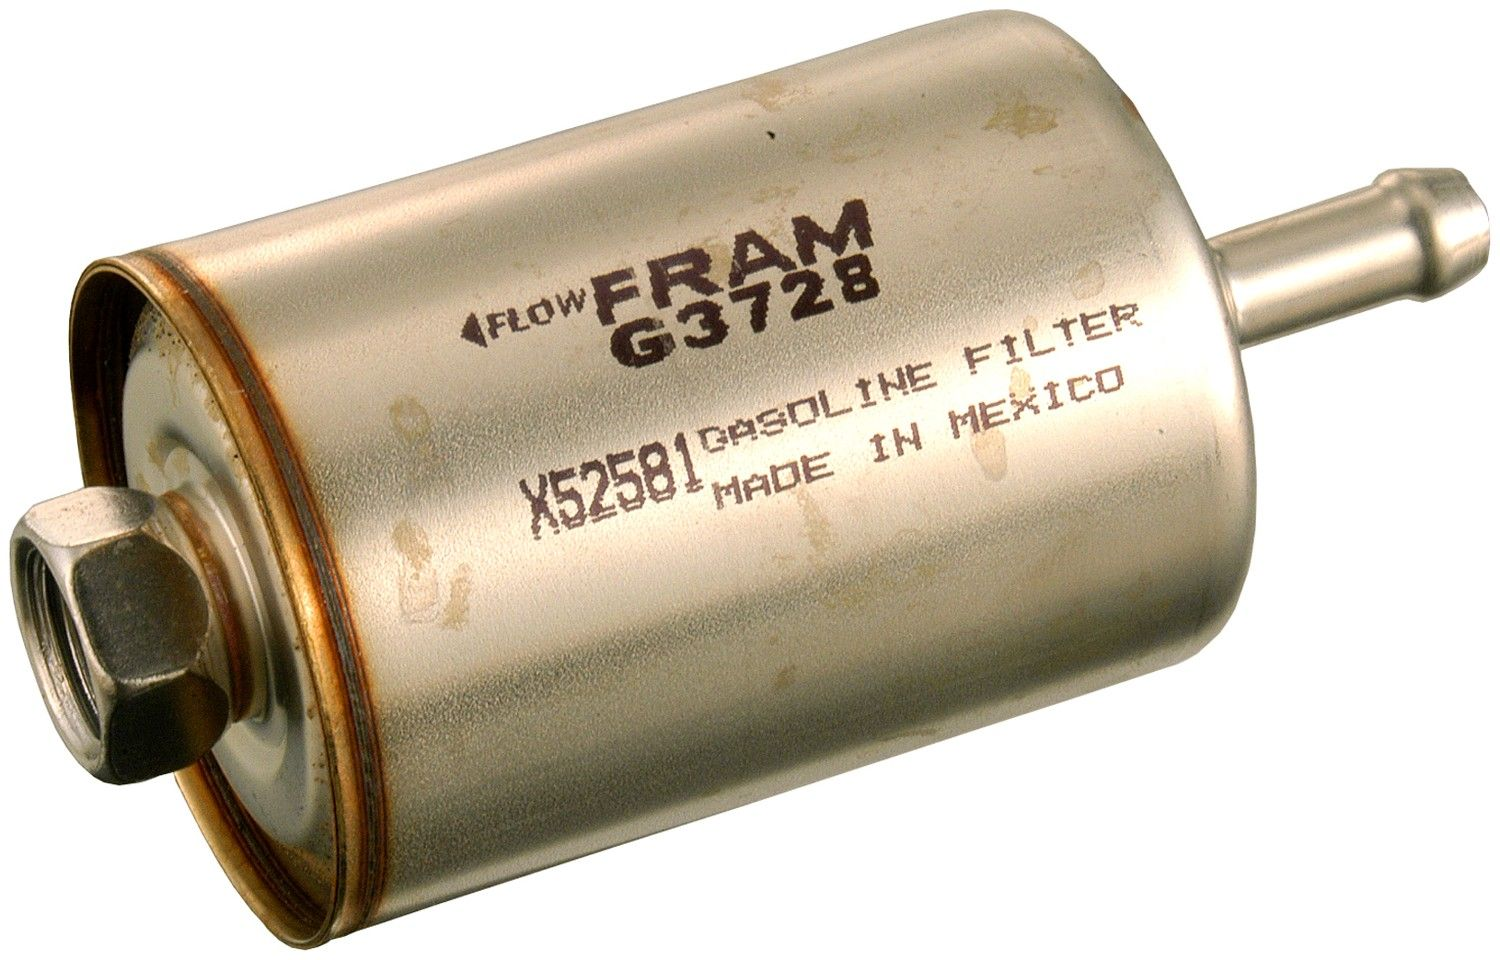 1986 GMC S15 Jimmy Fuel Filter 6 Cyl 2.8L (Fram G3728) In-Line Fuel Filter  Unit box product .